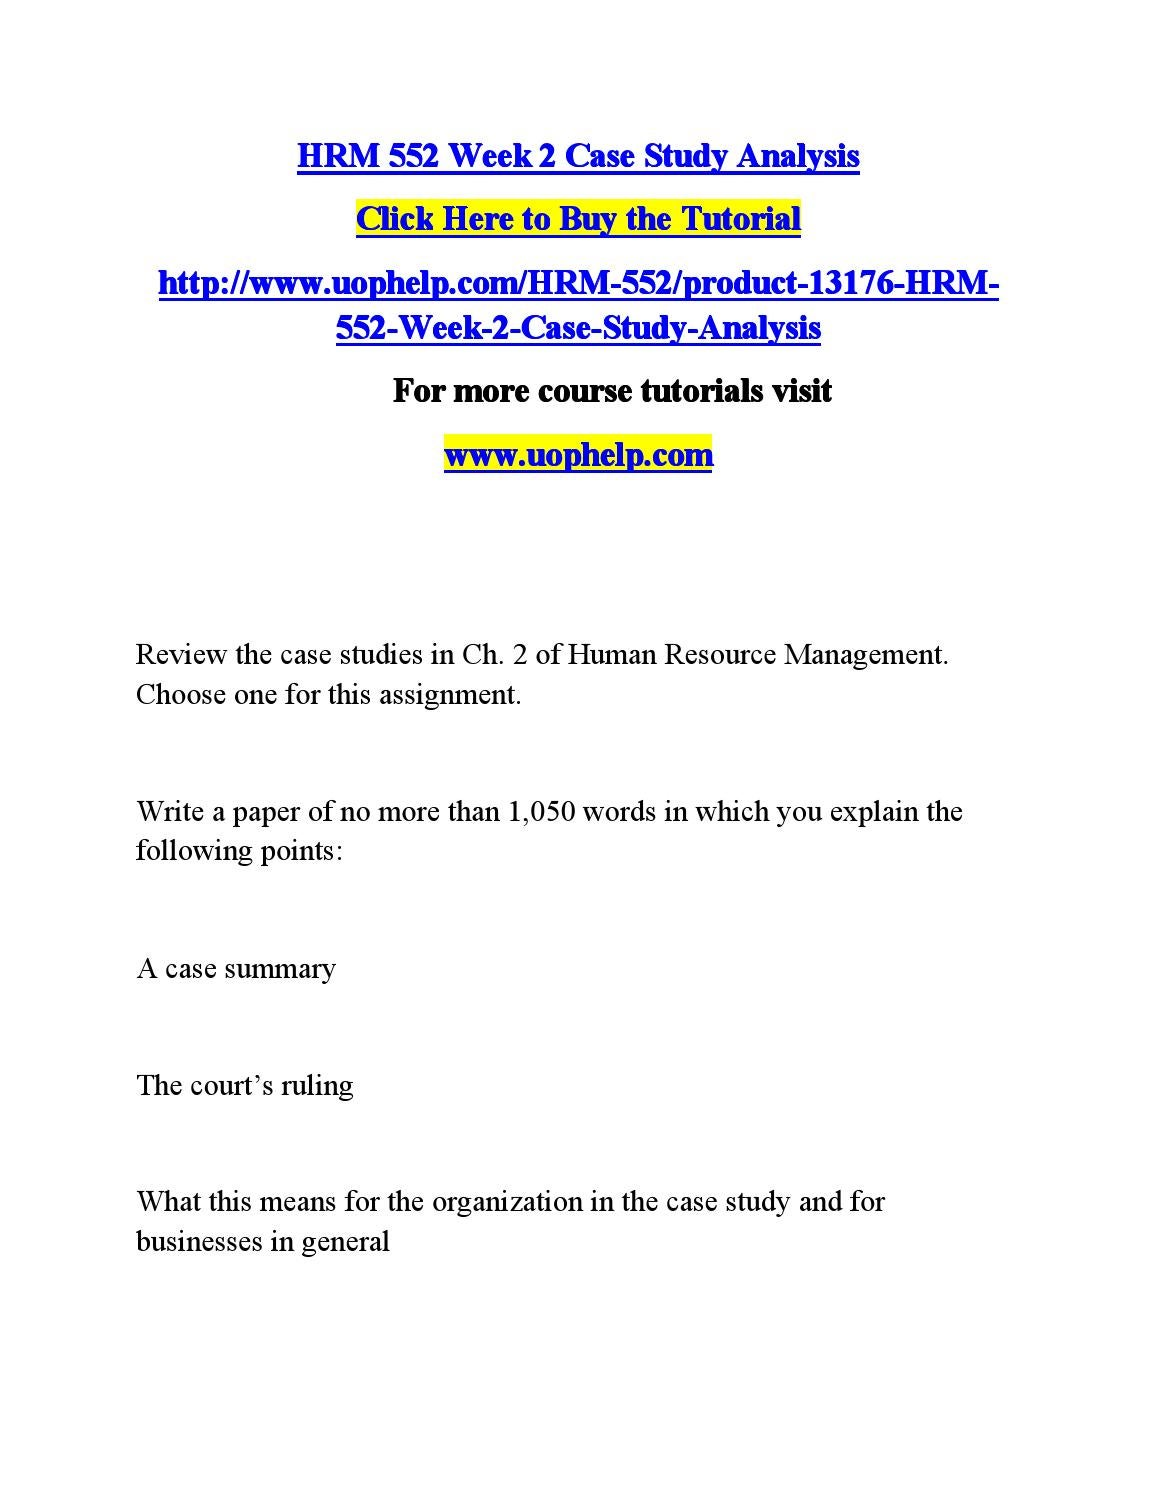 hrm 552 case study analysis For more classes visit wwwhrm552tutorcom hrm 552 week 1 travel agency hr plan hrm 552 week 2 case study analysis hrm 552 week 3 recommendation report hrm 552 week 4 engagement strategy presentation hrm 552 week 4 engagement strategy outline hrm 552 week 5 strategic hr approach hrm 552.